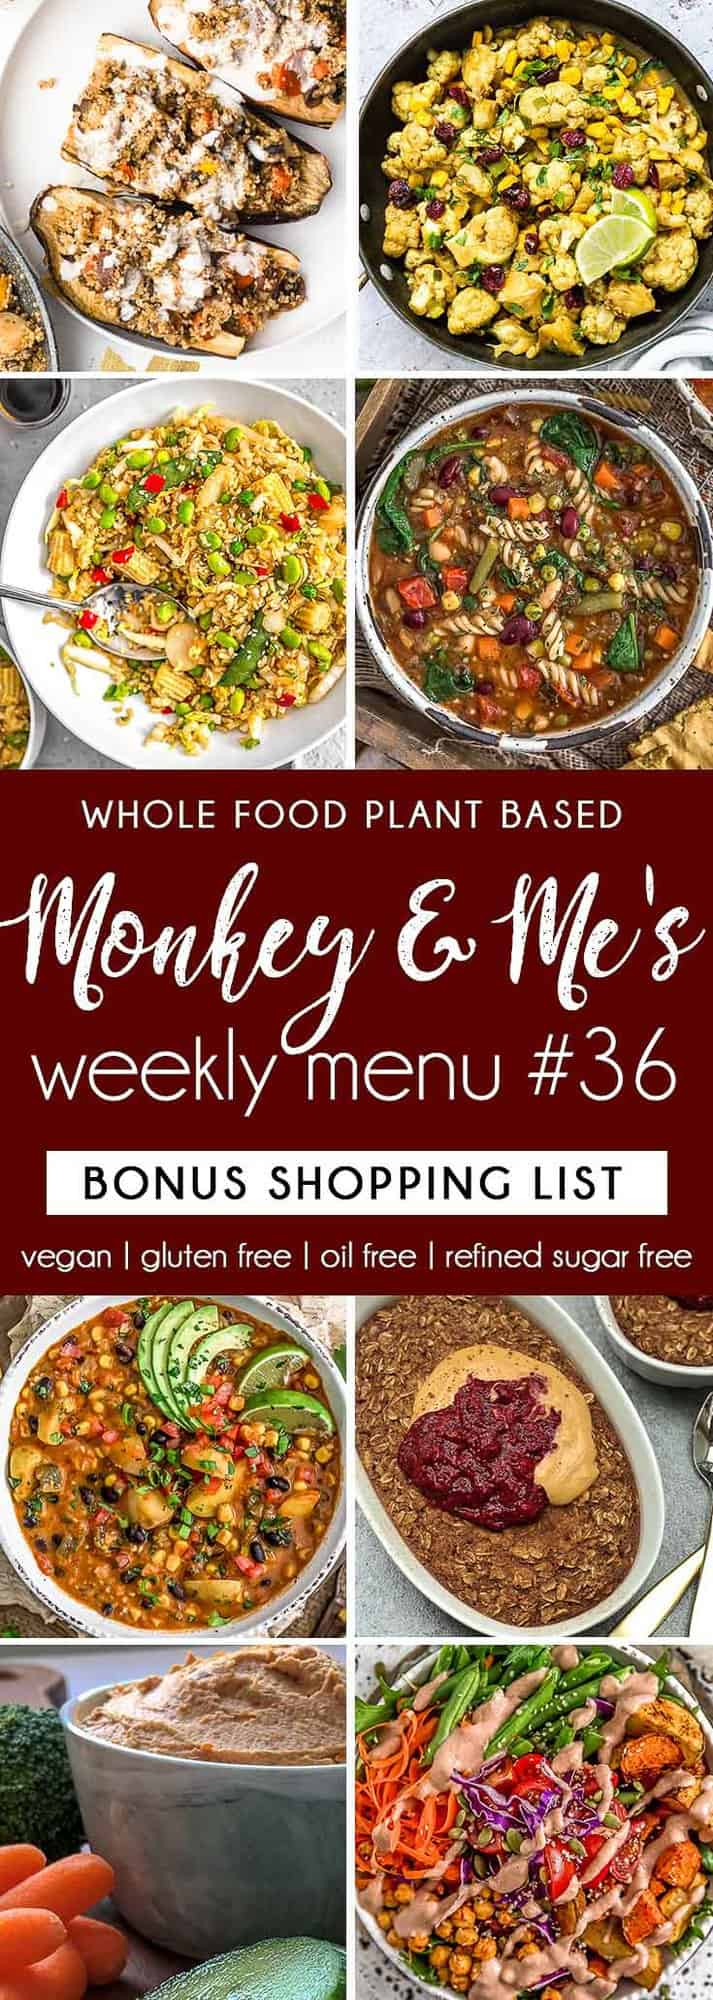 Monkey and Me's Menu 36 featuring 8 recipes